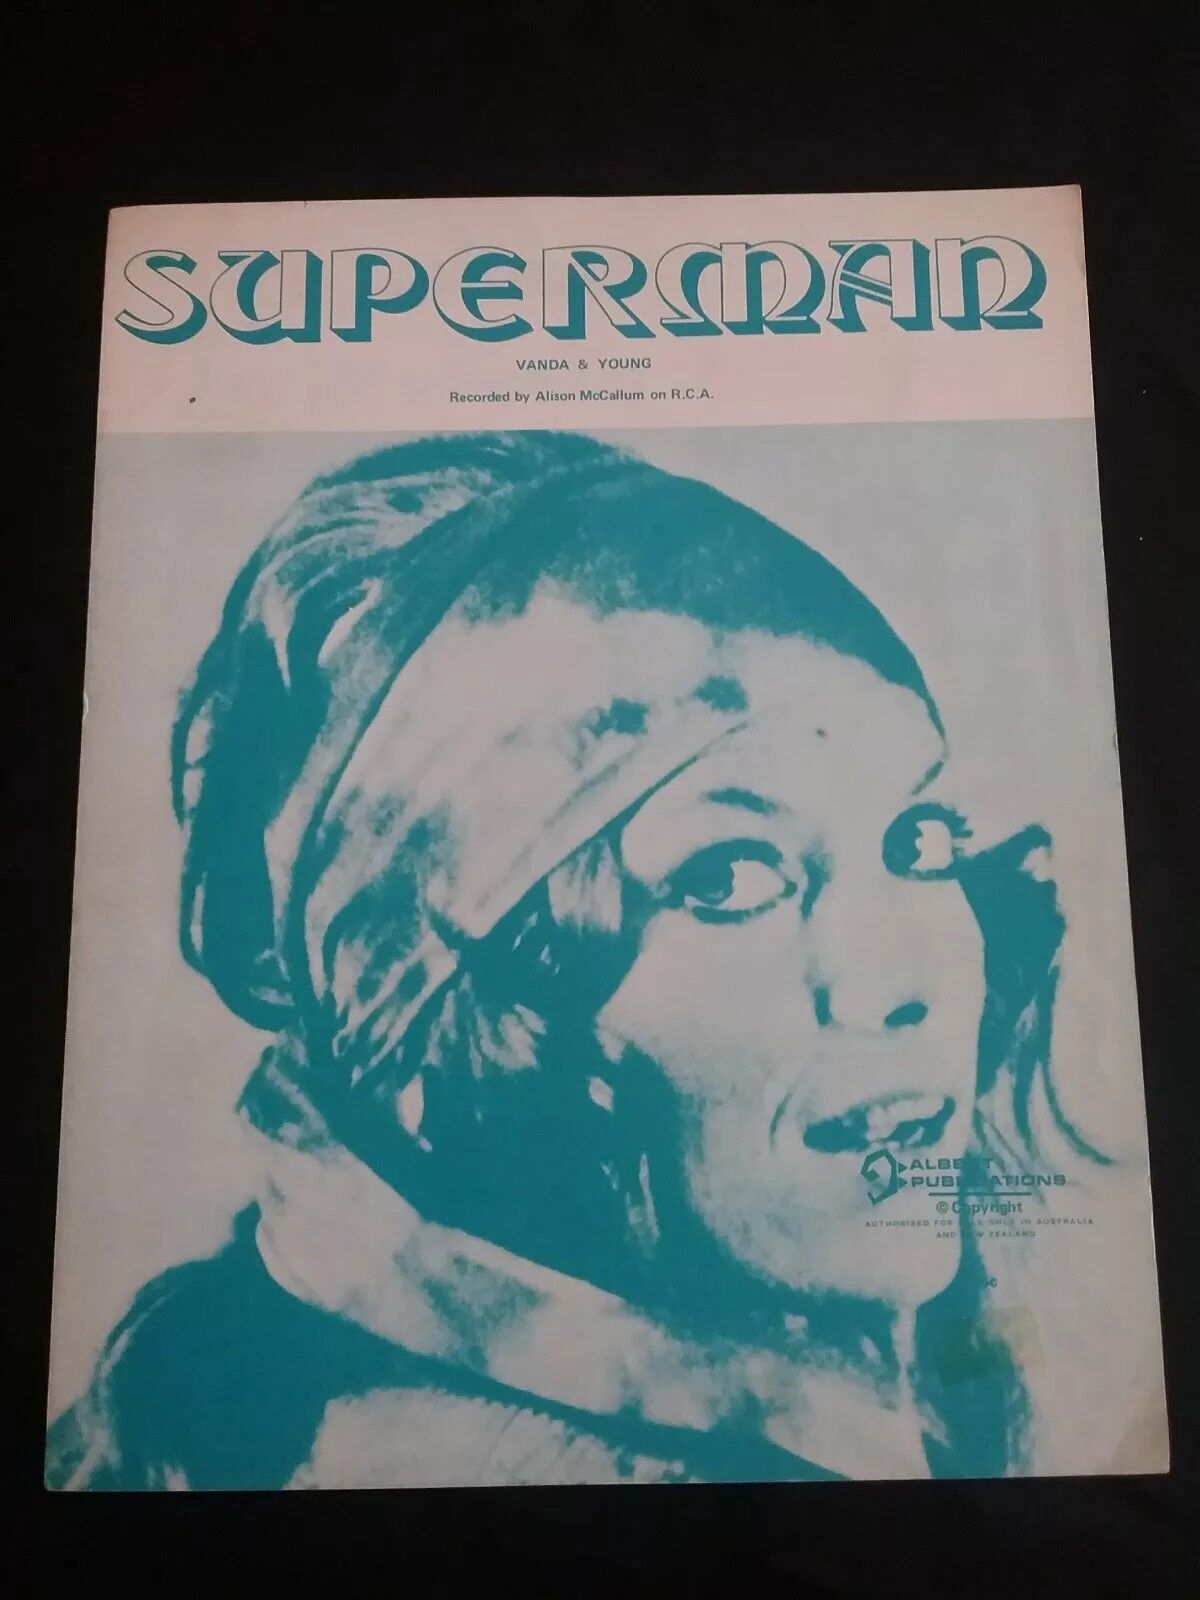 ALISON McCALLUM SUPERMAN SHEET MUSIC ALBERT PRODUCTIONS AUSTRALIA VANDA & YOUNG